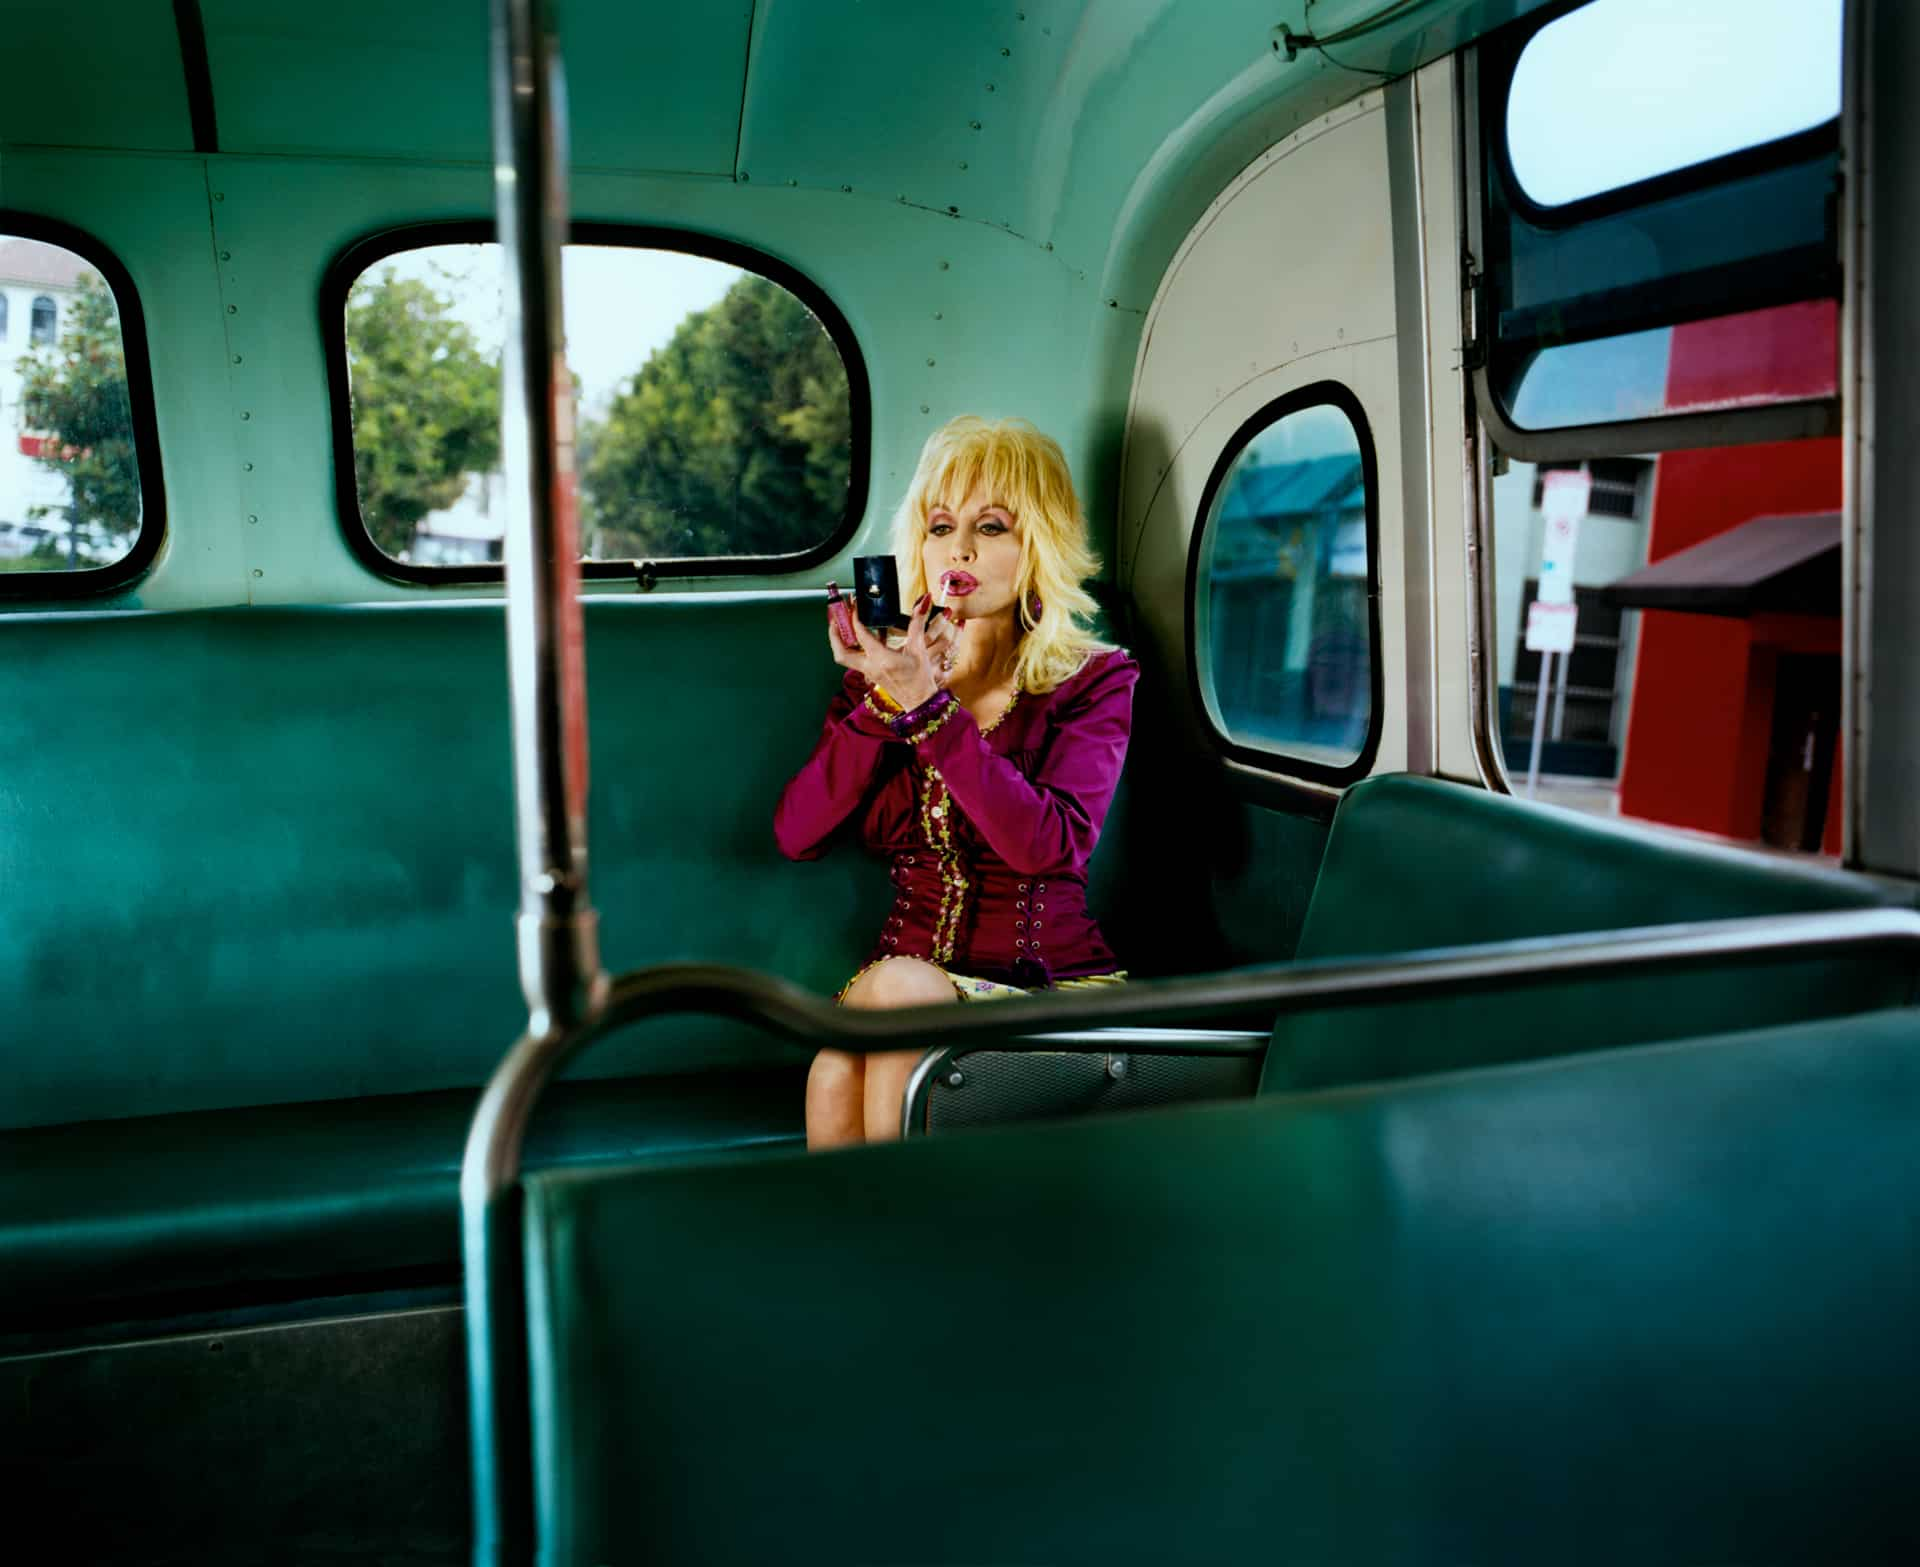 Dolly On Bus, Los Angeles, 2008